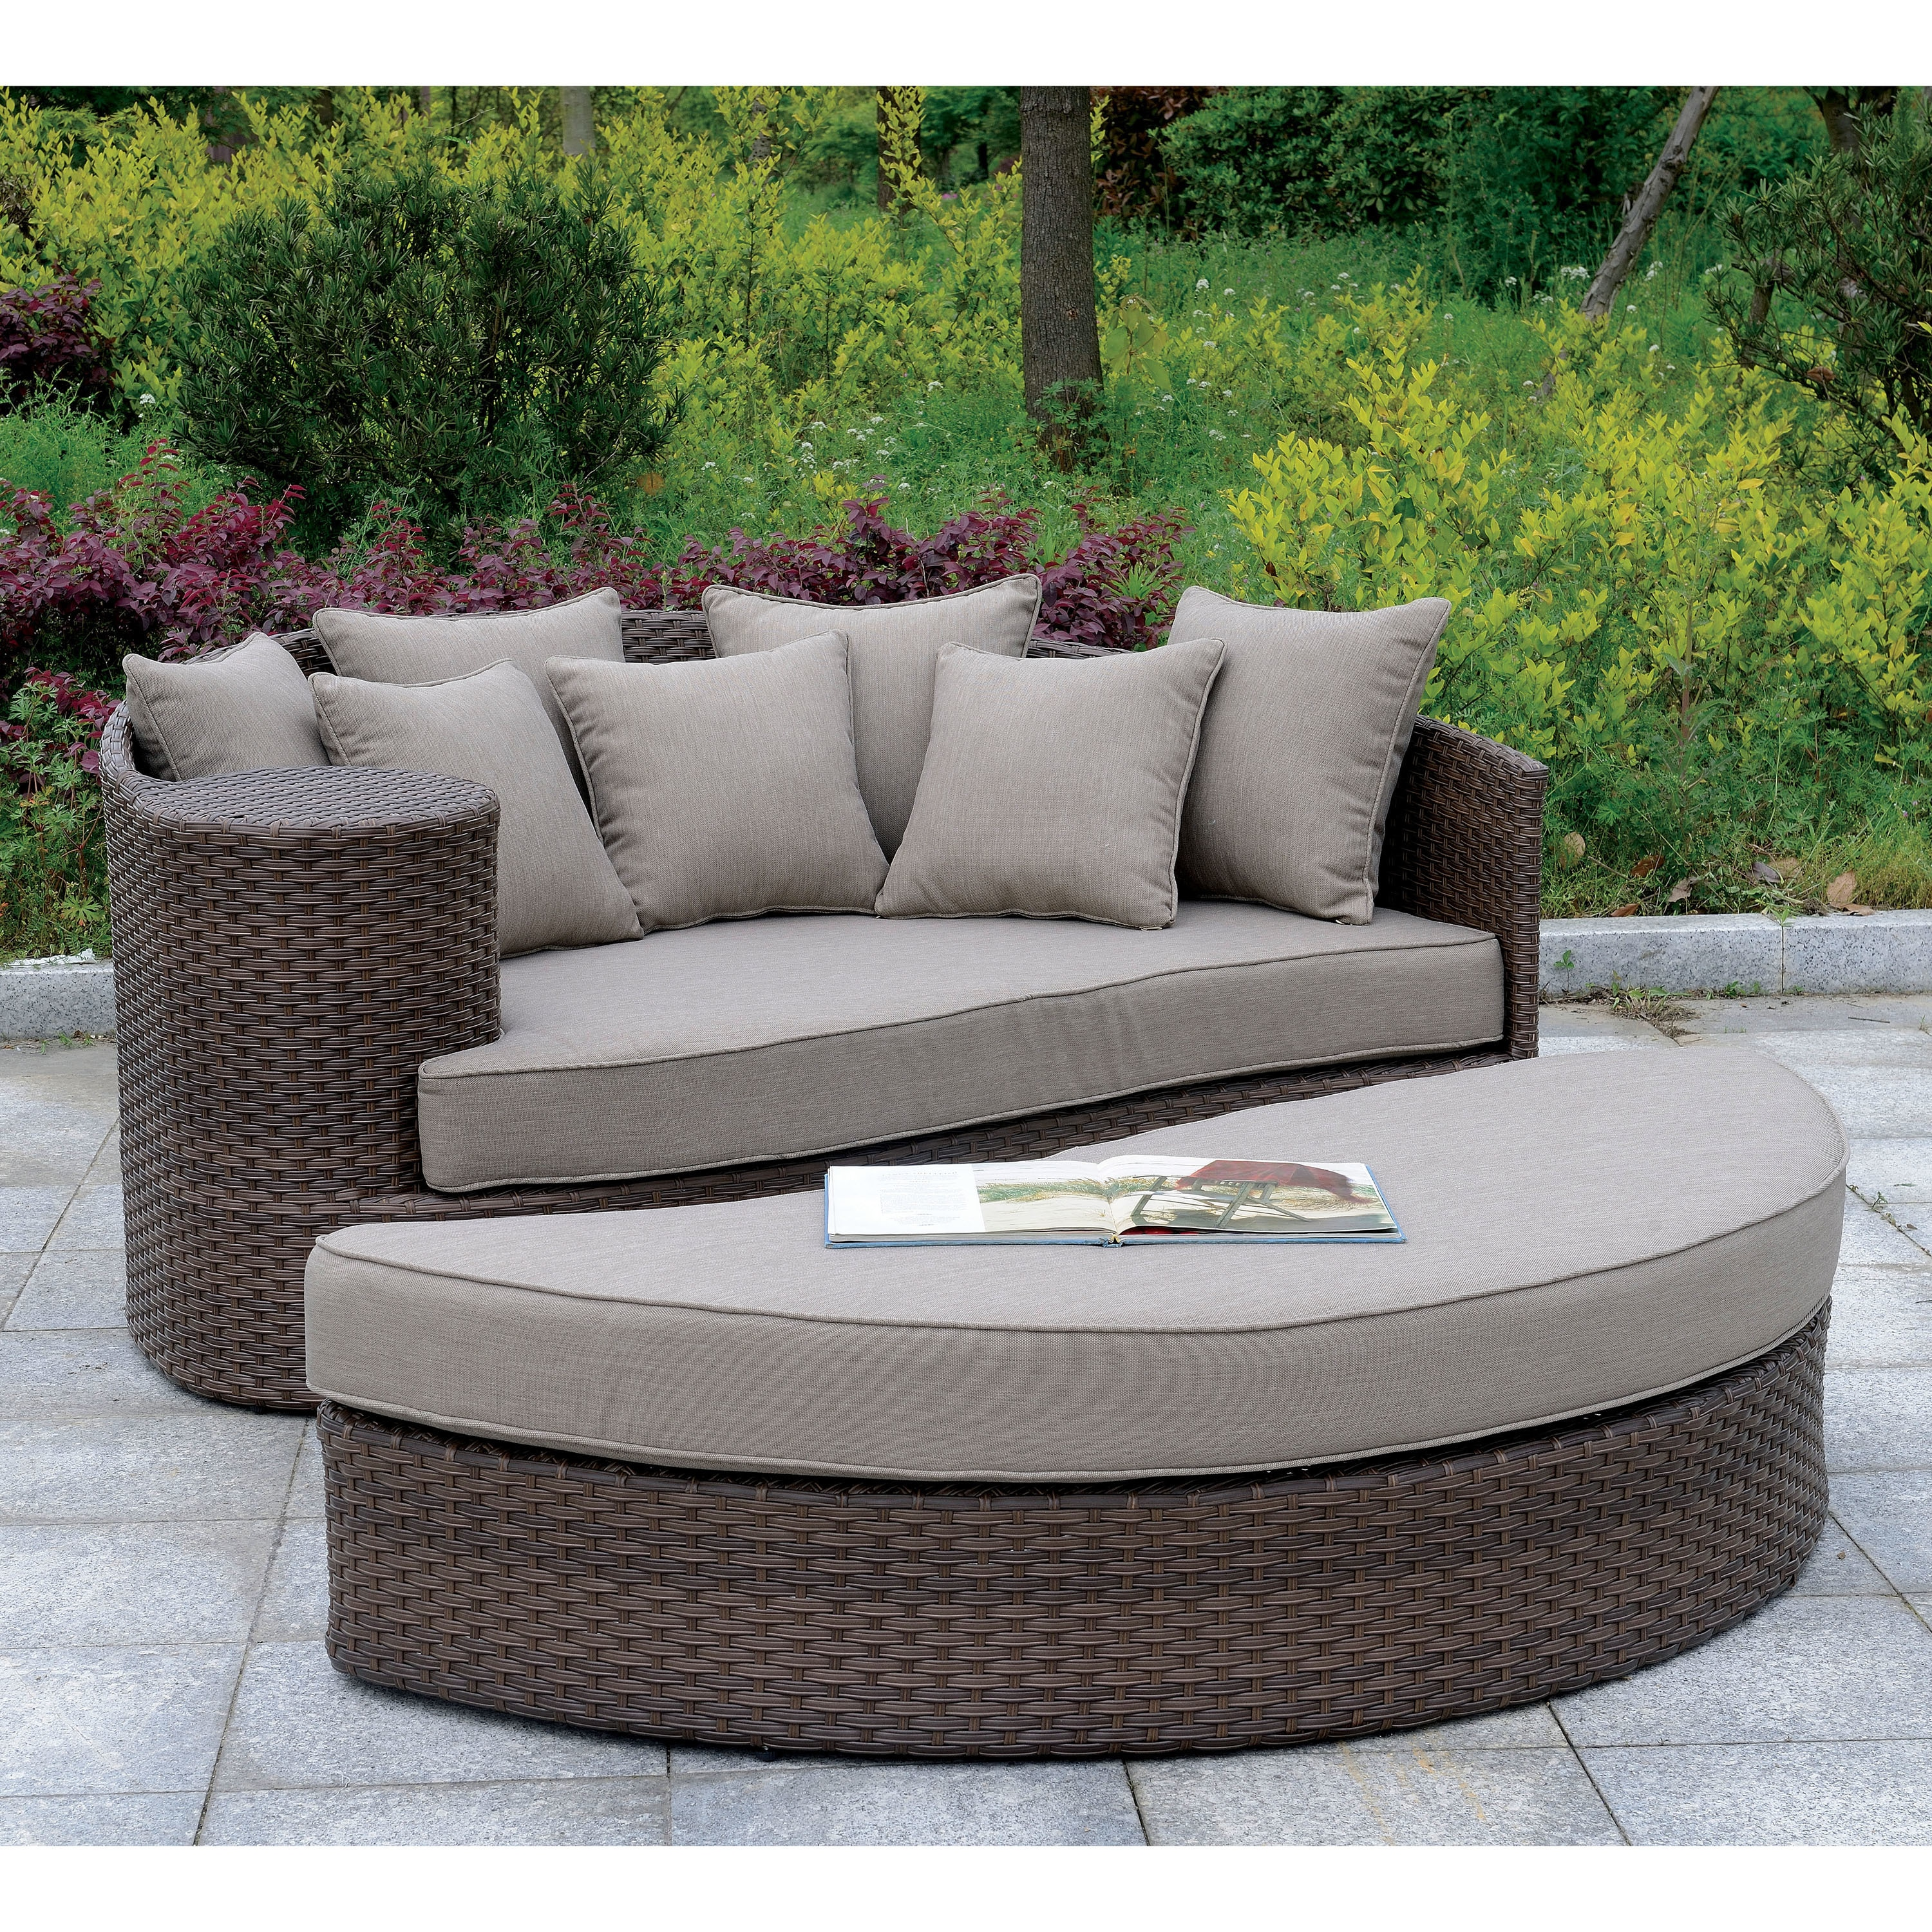 Attractive Shop Furniture Of America Felina Contemporary Brown Weather Resistant Round  Patio Sofa With Ottoman   Free Shipping Today   Overstock.com   20108102